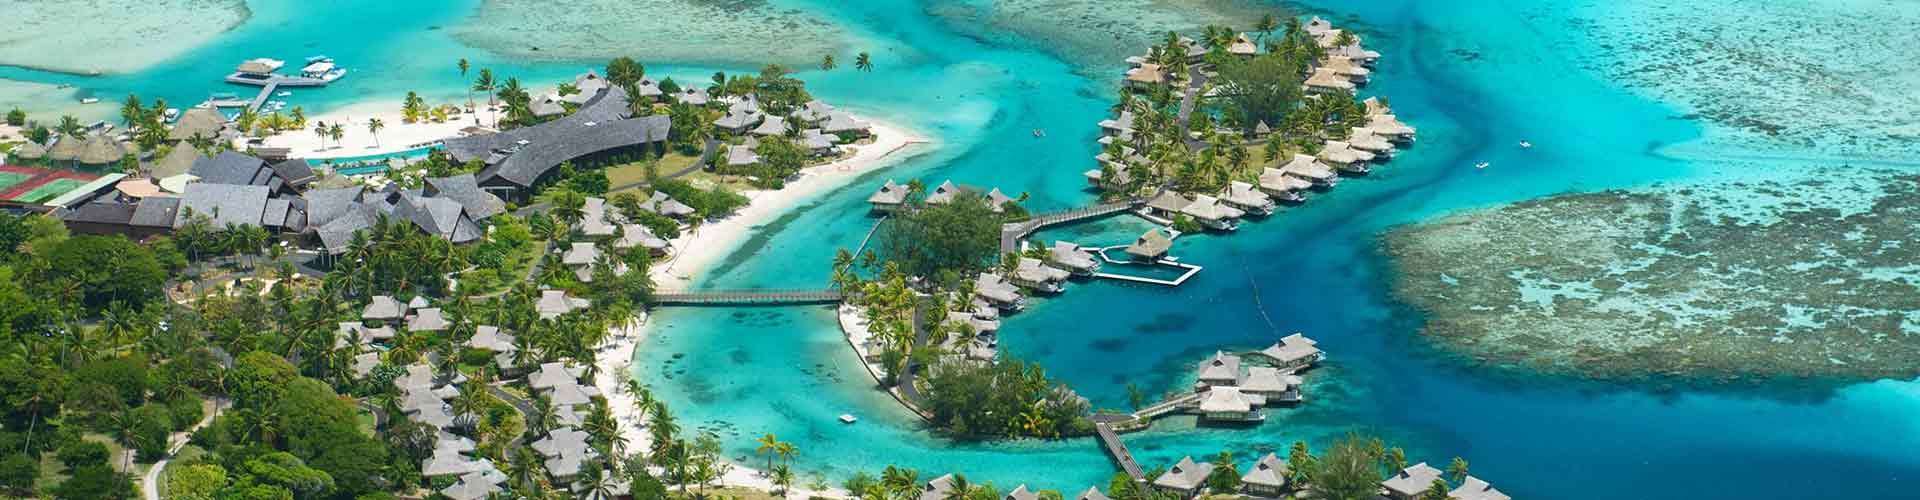 intercontinental-moorea-resort-spa-air-tahiti-